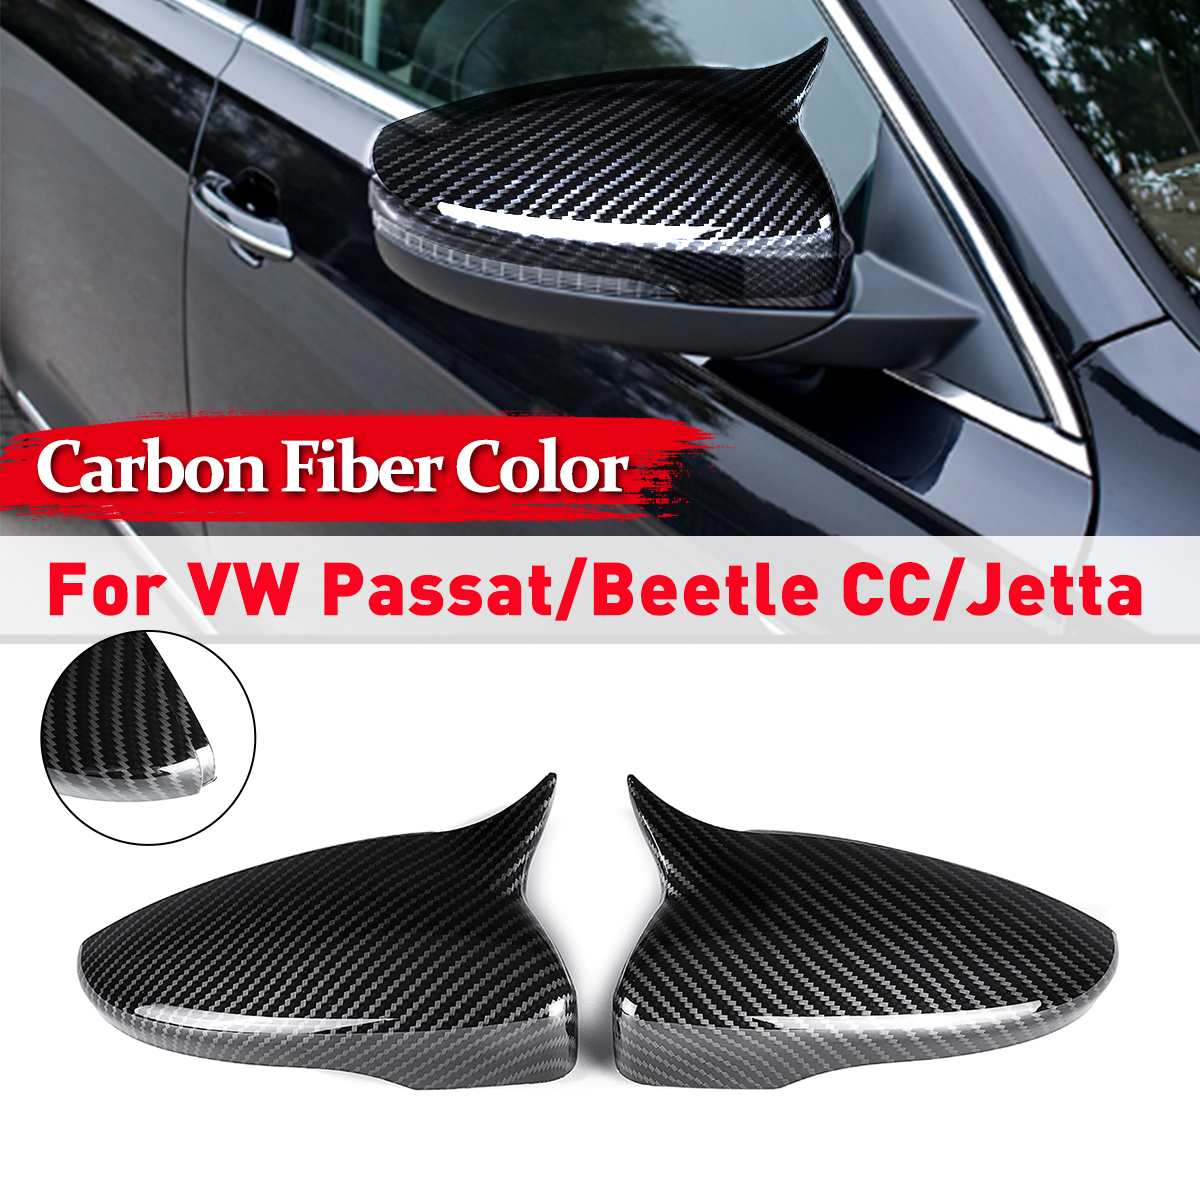 Horn Style Carbon Fiber Style Wing Door Rearview Mirrors Cap Mirror Covers For VW CC JETTA Scirocco Passat B7 Beetle